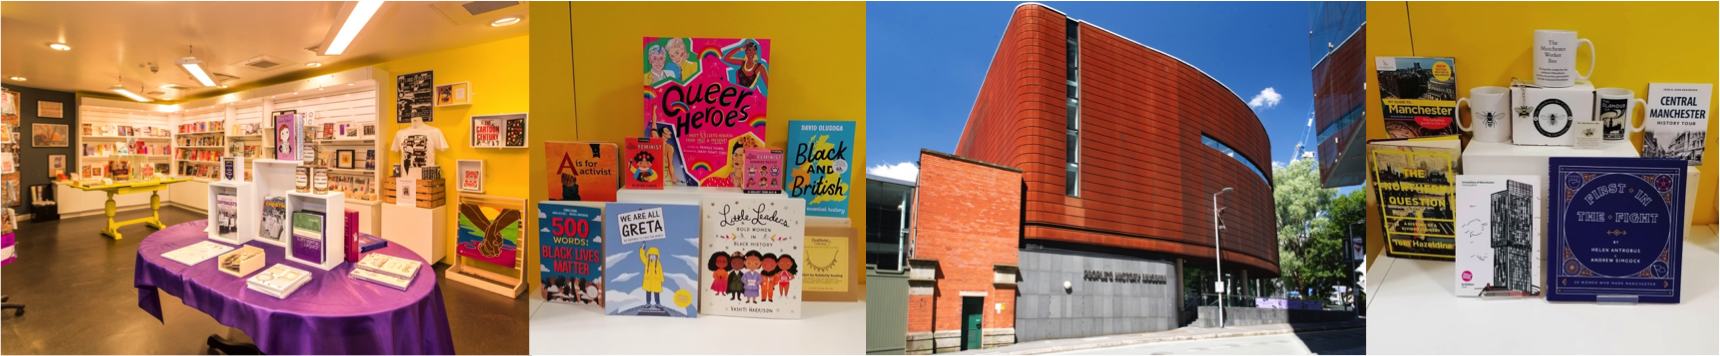 Left to right PHM shop, Kid's Christmas gifts ideas, People's History Museum exterior and Manchester themed gifts